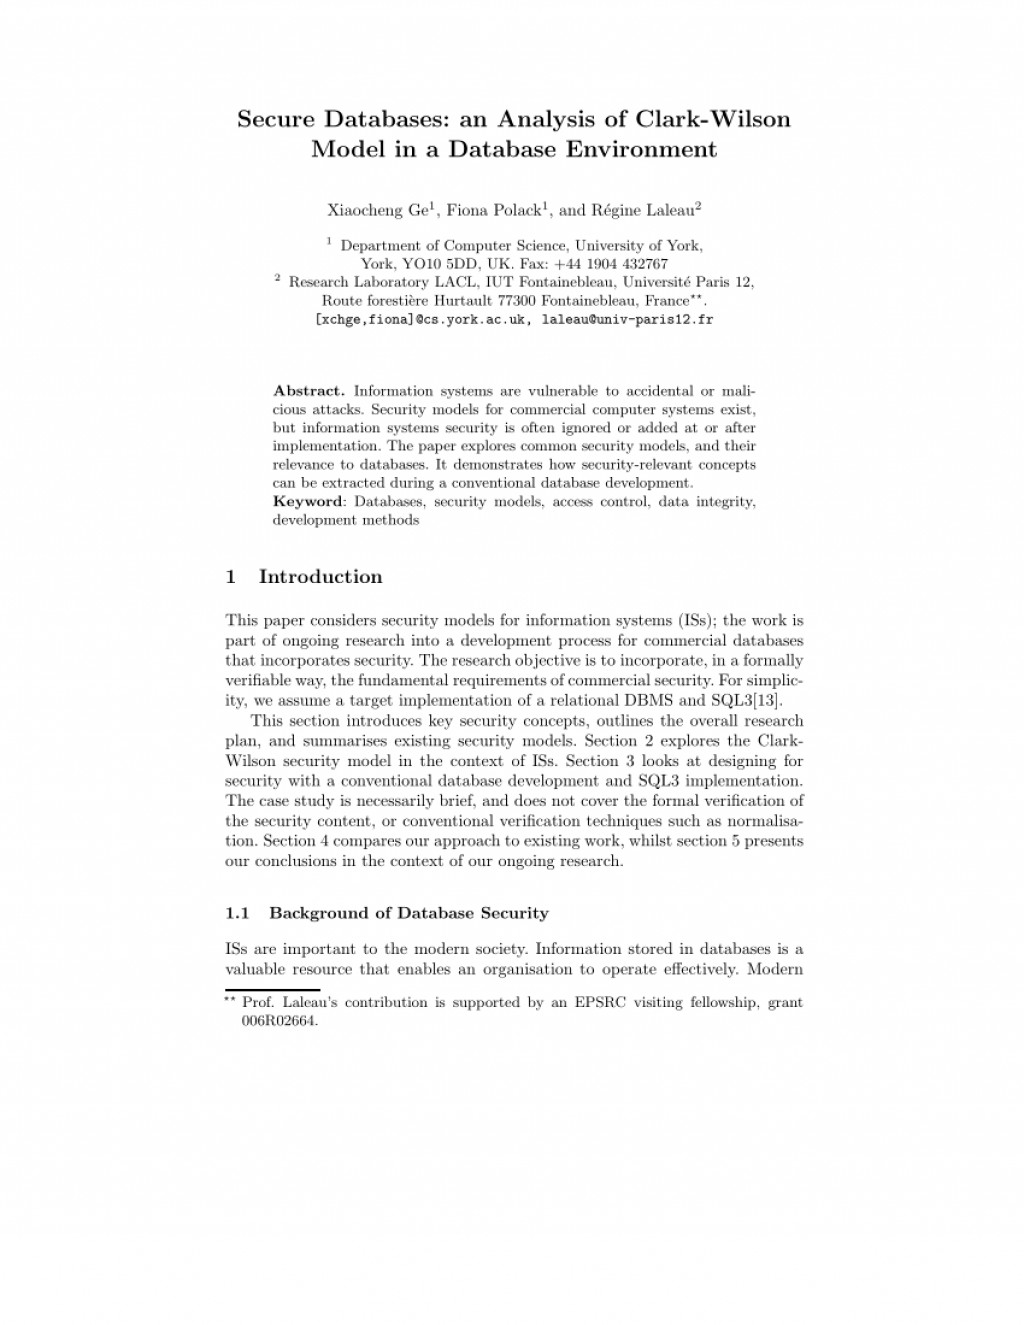 006 Database Security Research Paper Abstract Fascinating Large